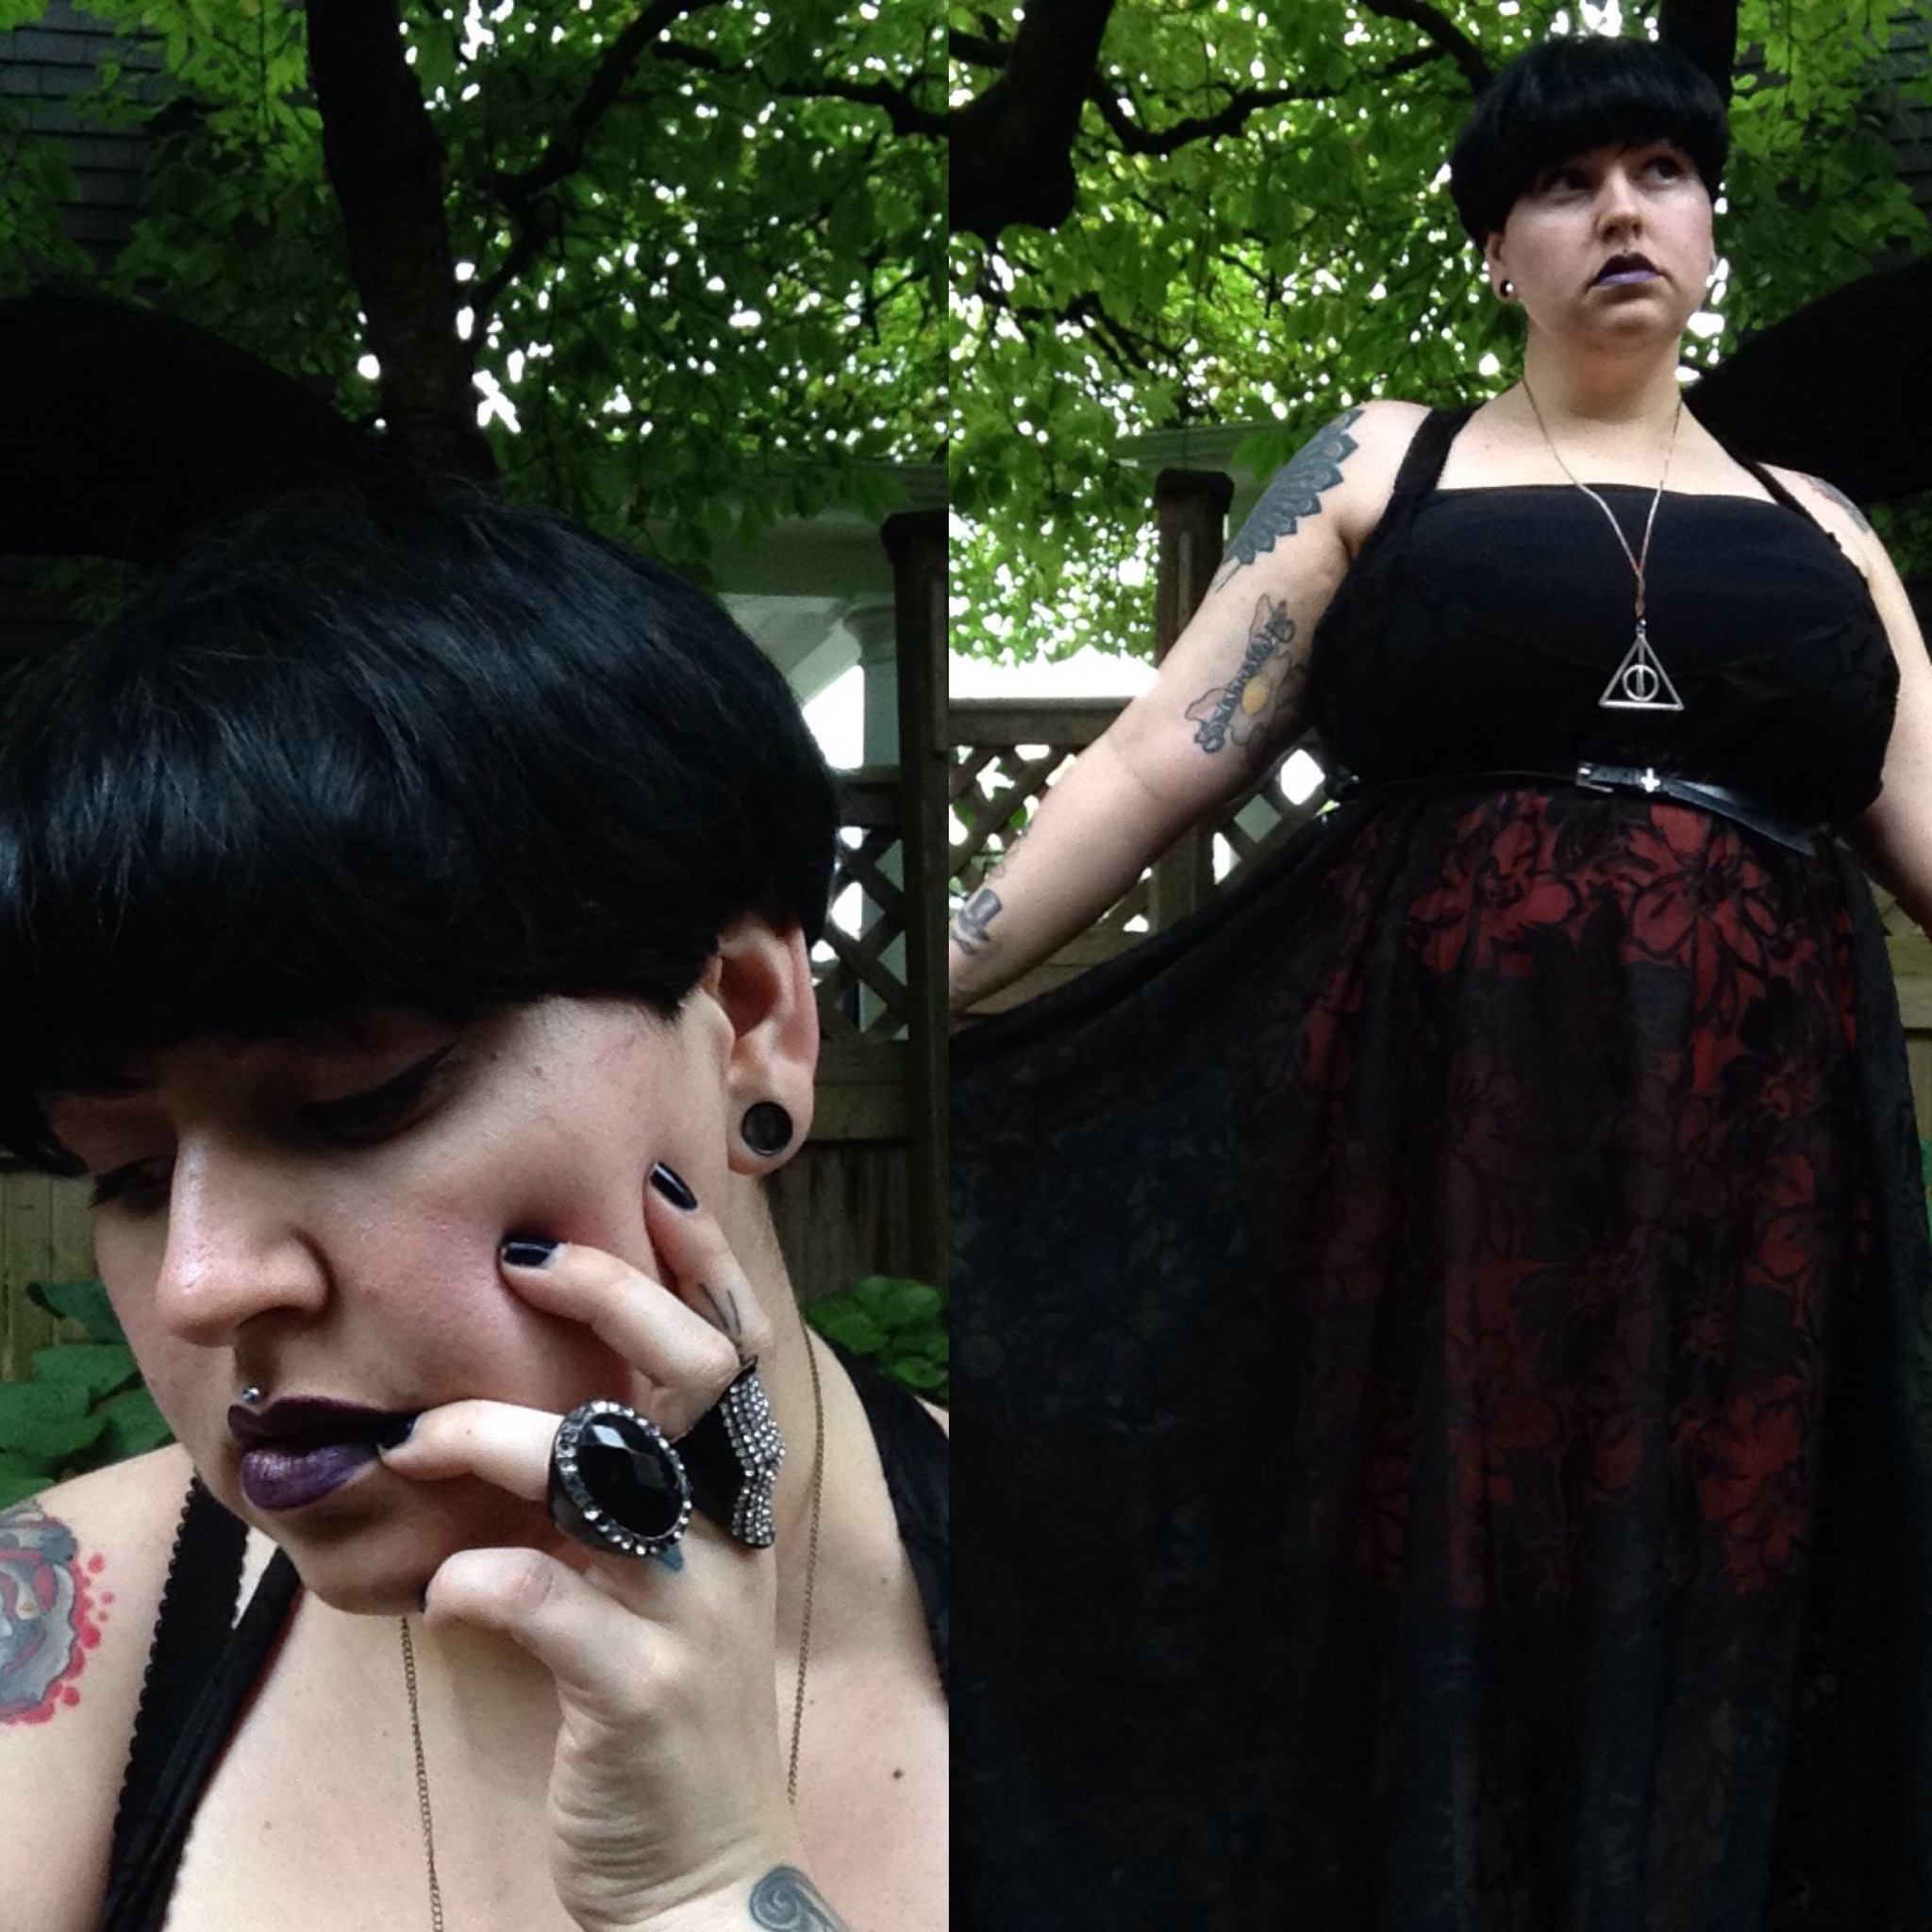 margot meanie // alternative plus size fashion blogger Margot Meanie is wearing the Dark rose dress by indie design brand Zelie for She